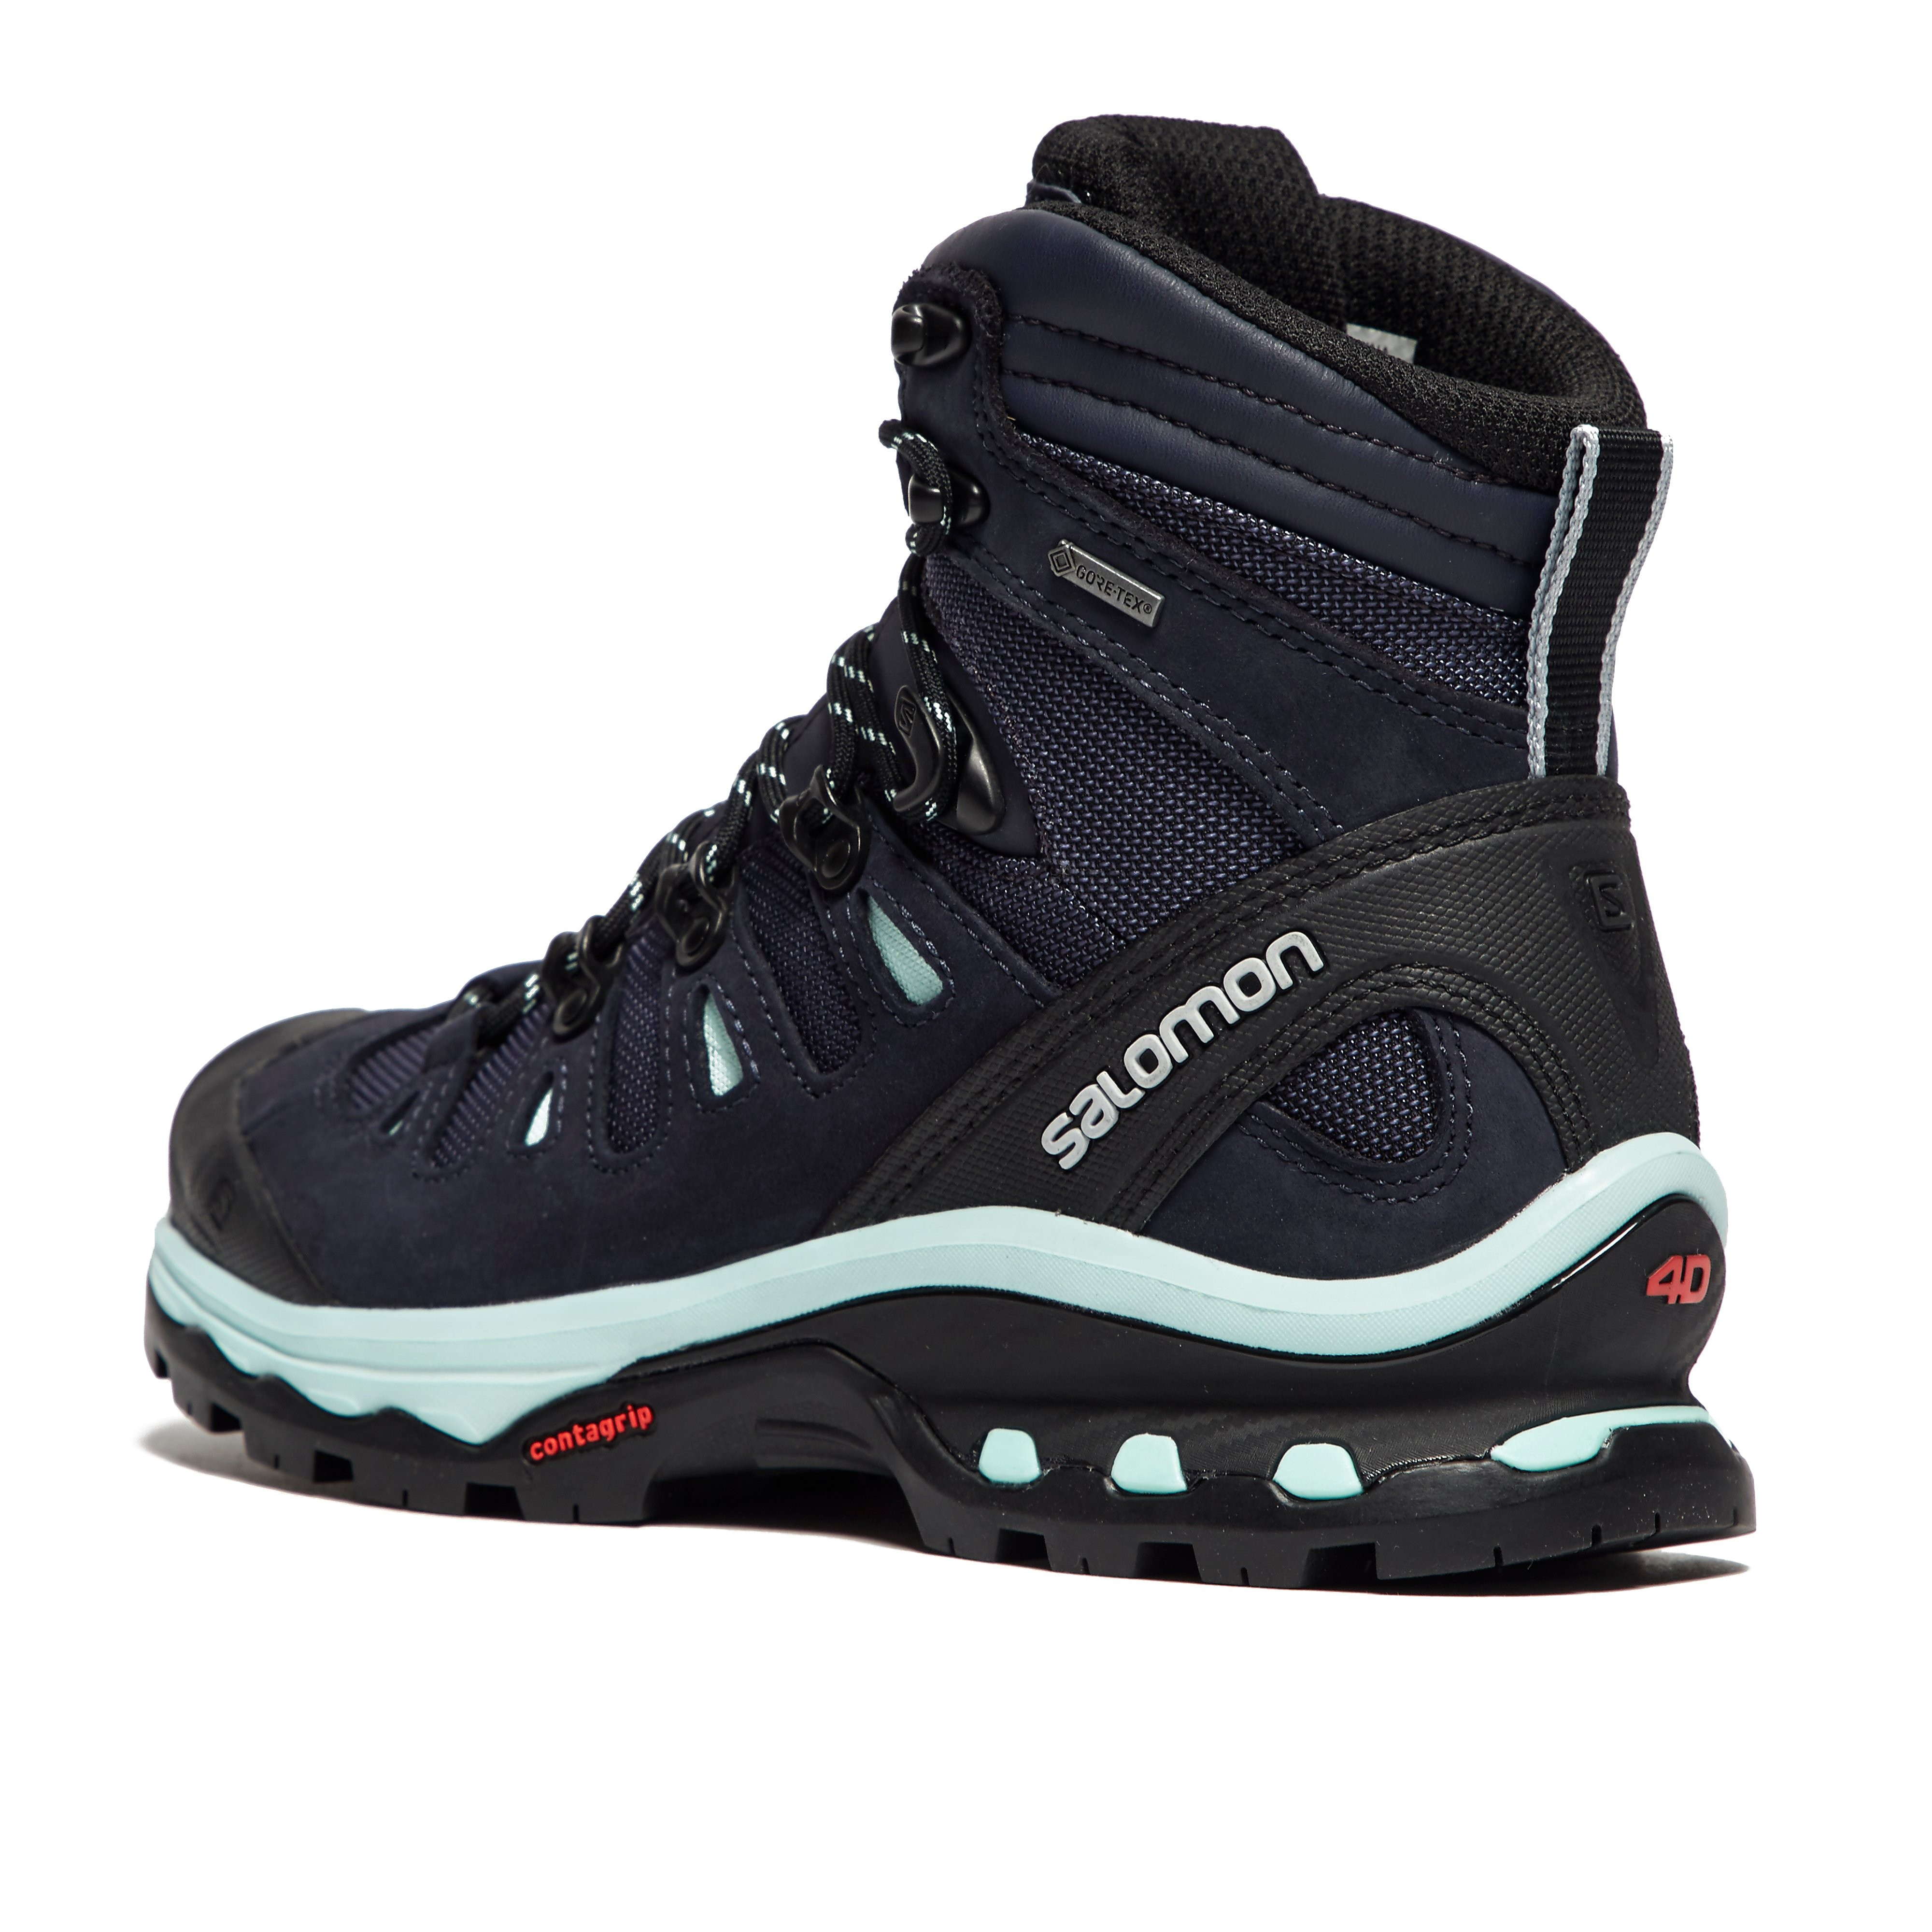 Salomon Quest 4D 3 GTX Women's Walking Boots